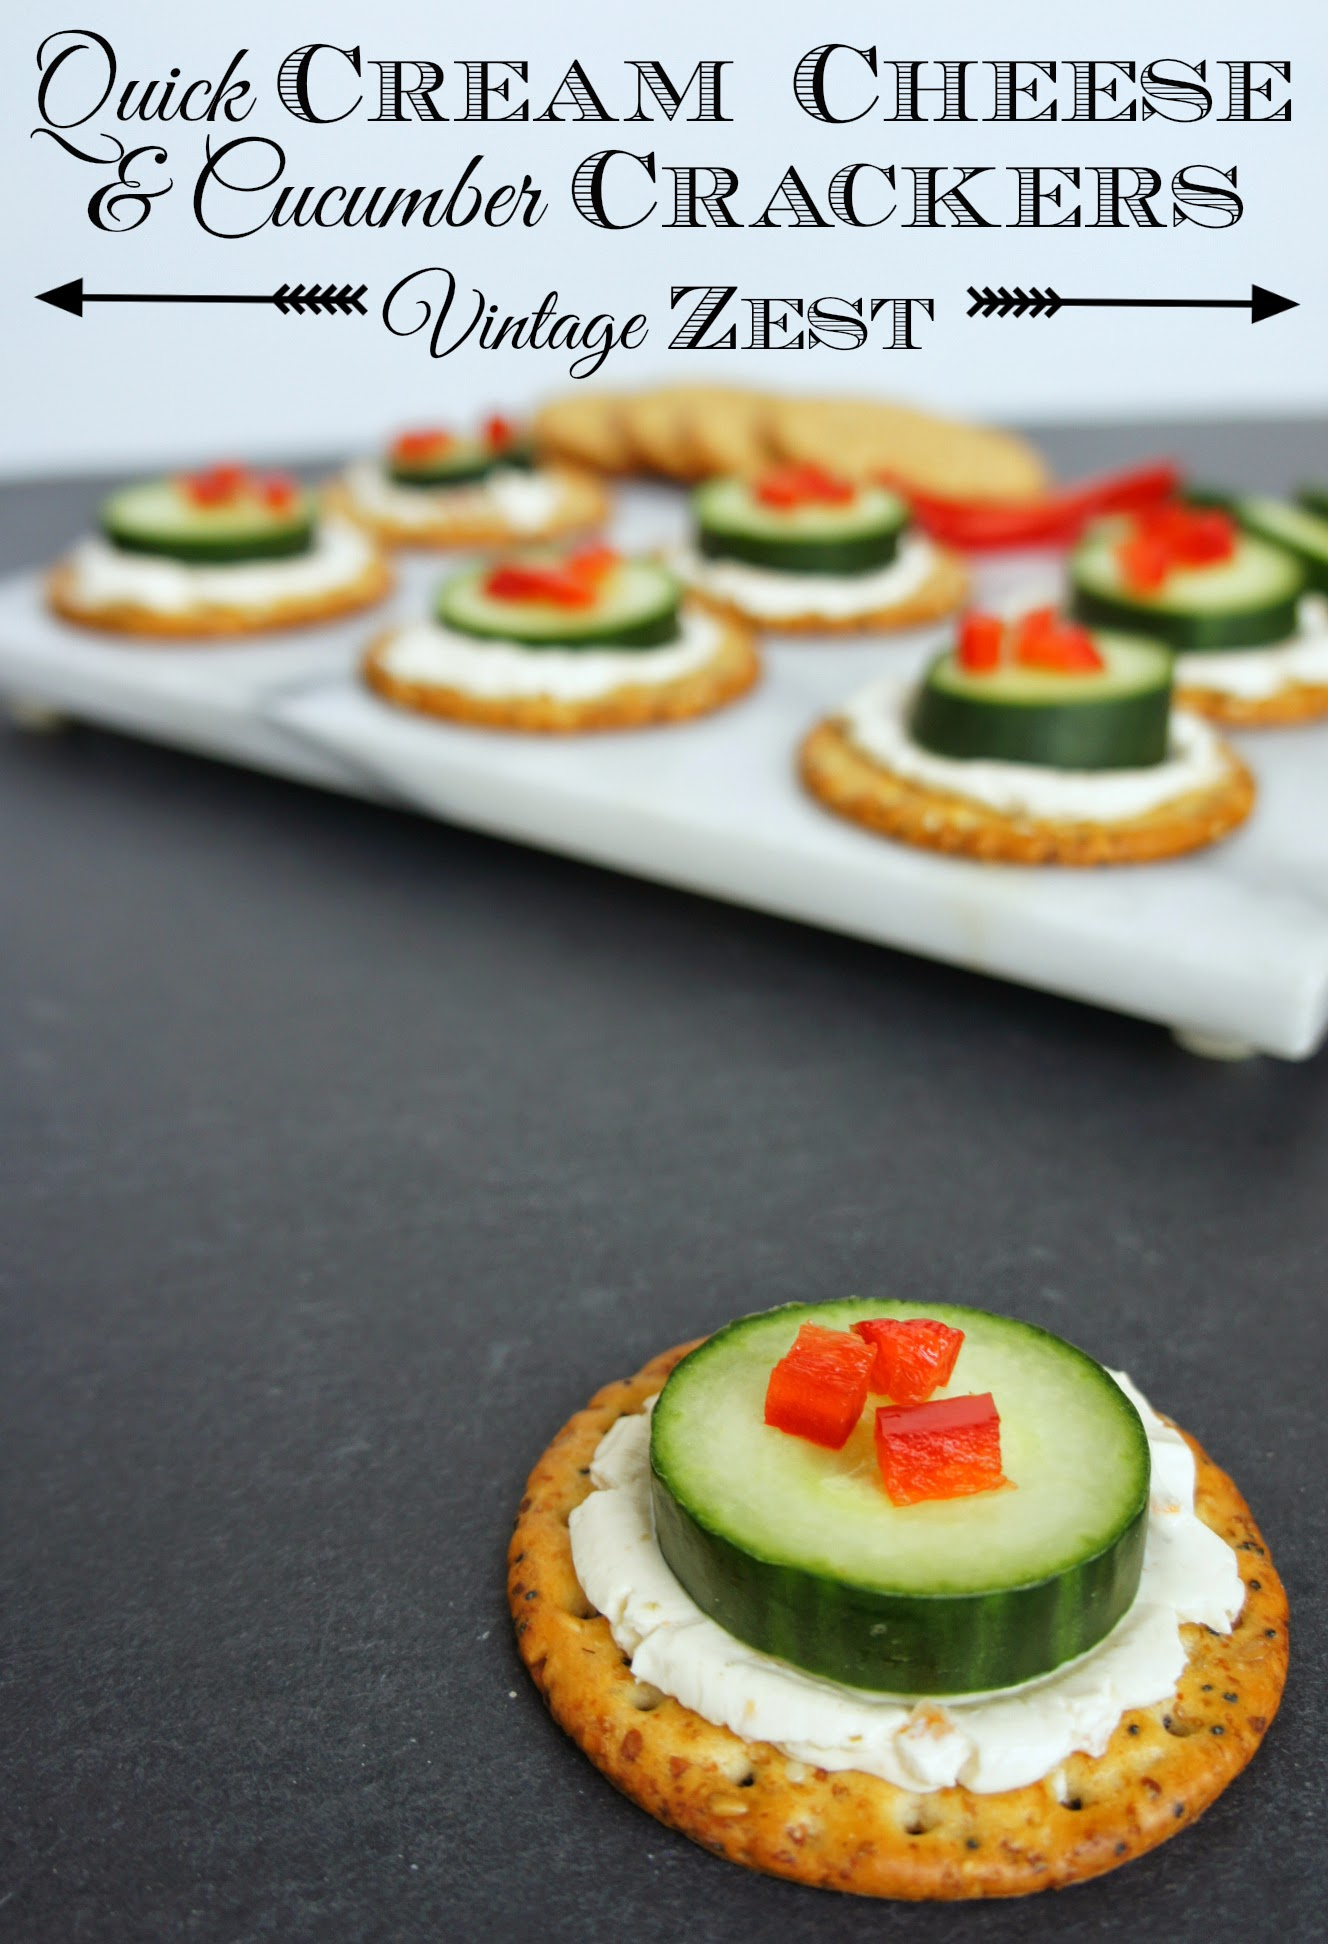 #shop Quick Cream Cheese and Cucumber Crackers on Diane's Vintage Zest! #SpreadtheFlavor #CollectiveBias